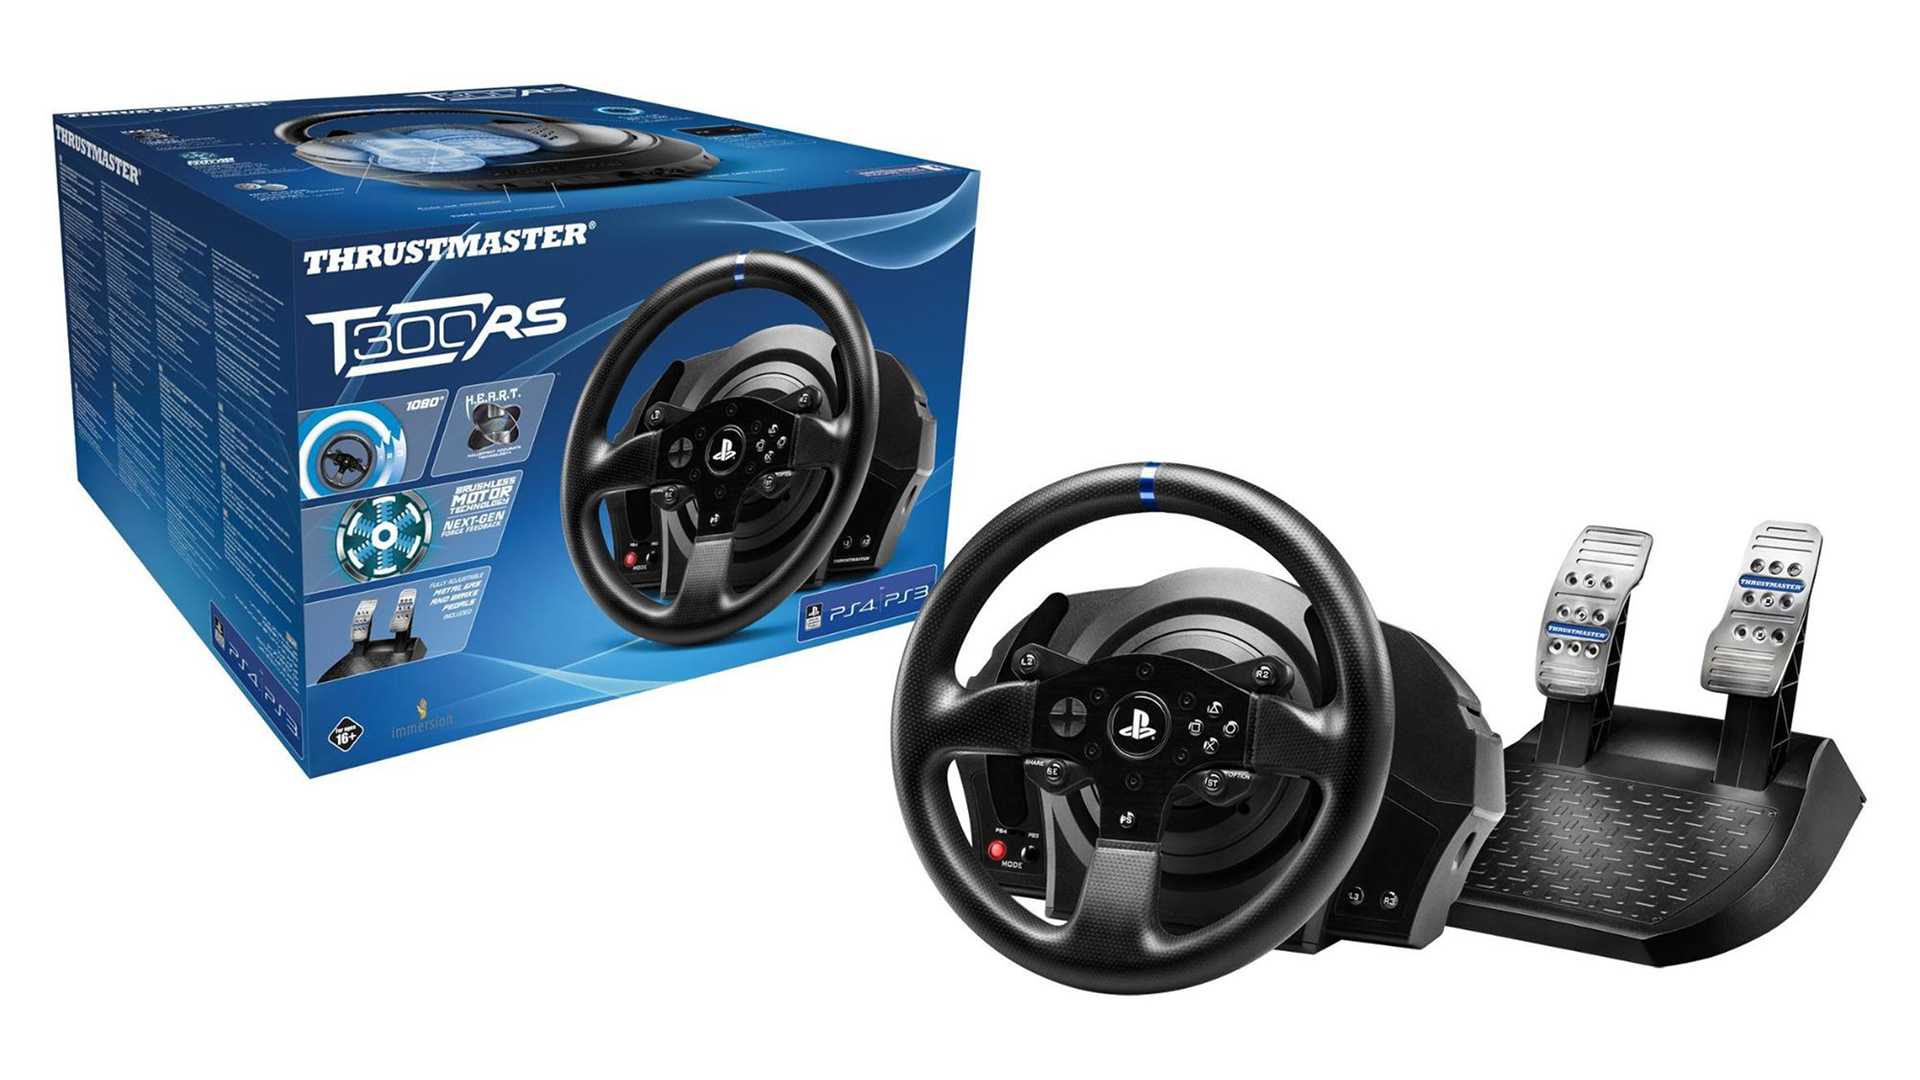 Thrustmaster T300RS - Packaging